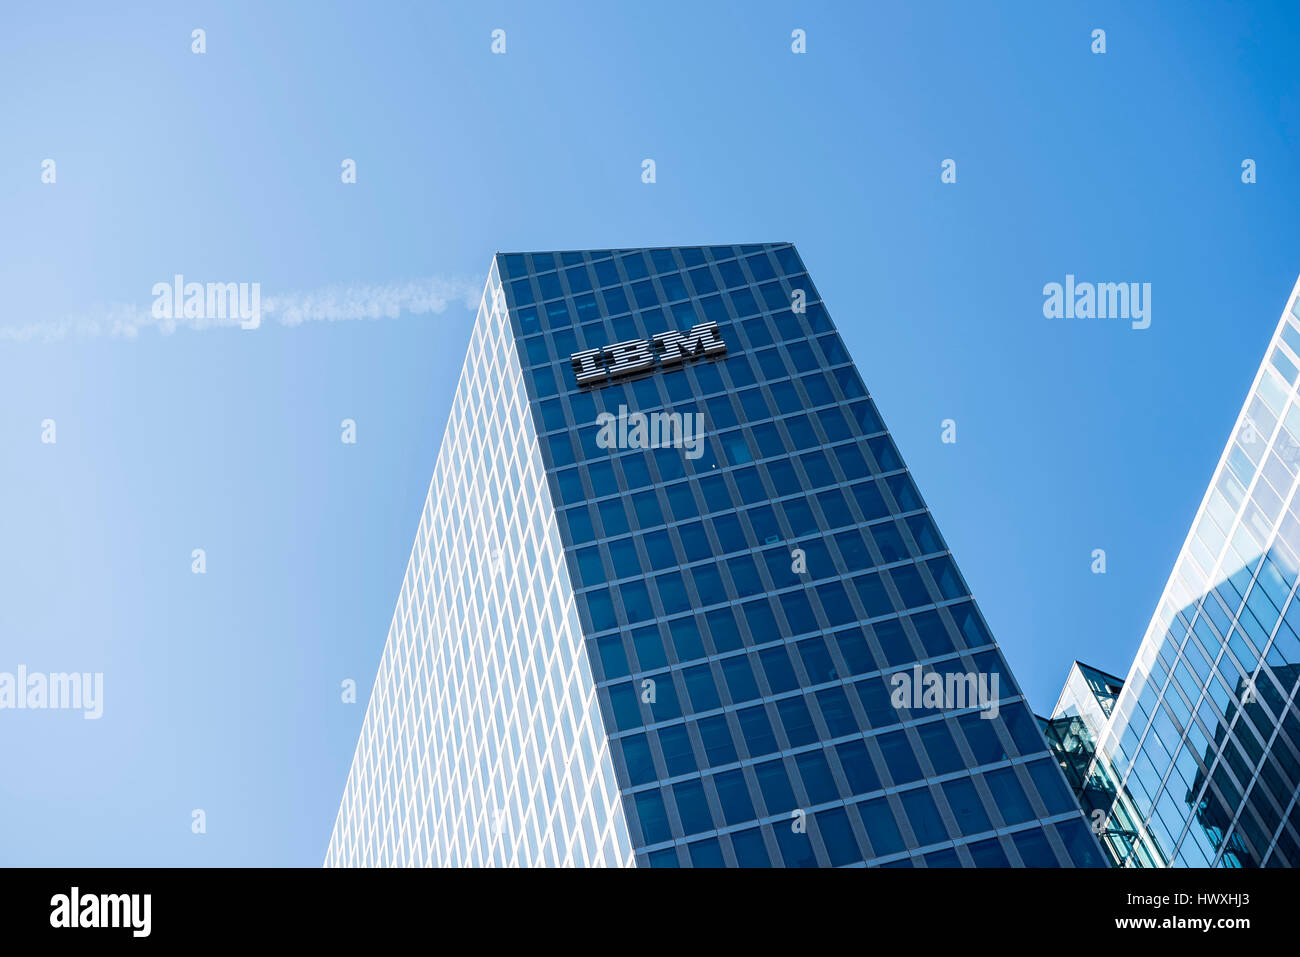 IBM Building with Watson IoT Center, Munich, Germany - Stock Image